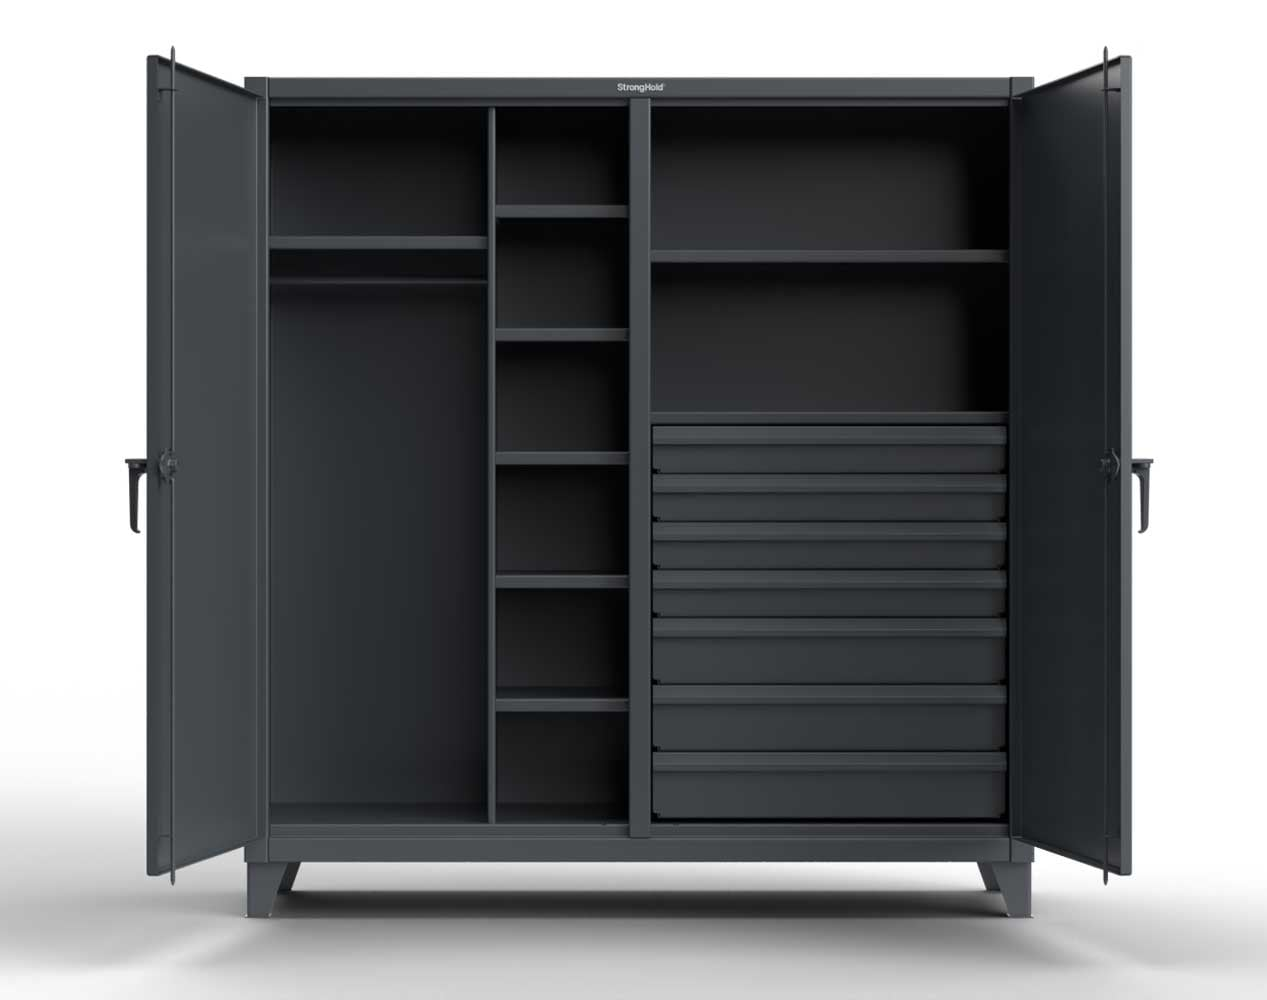 Extra Heavy Duty 12 GA Double Shift Uniform Cabinet with 7 Drawers, 7 Shelves – 72 In. W x 24 In. D x 78 In. H